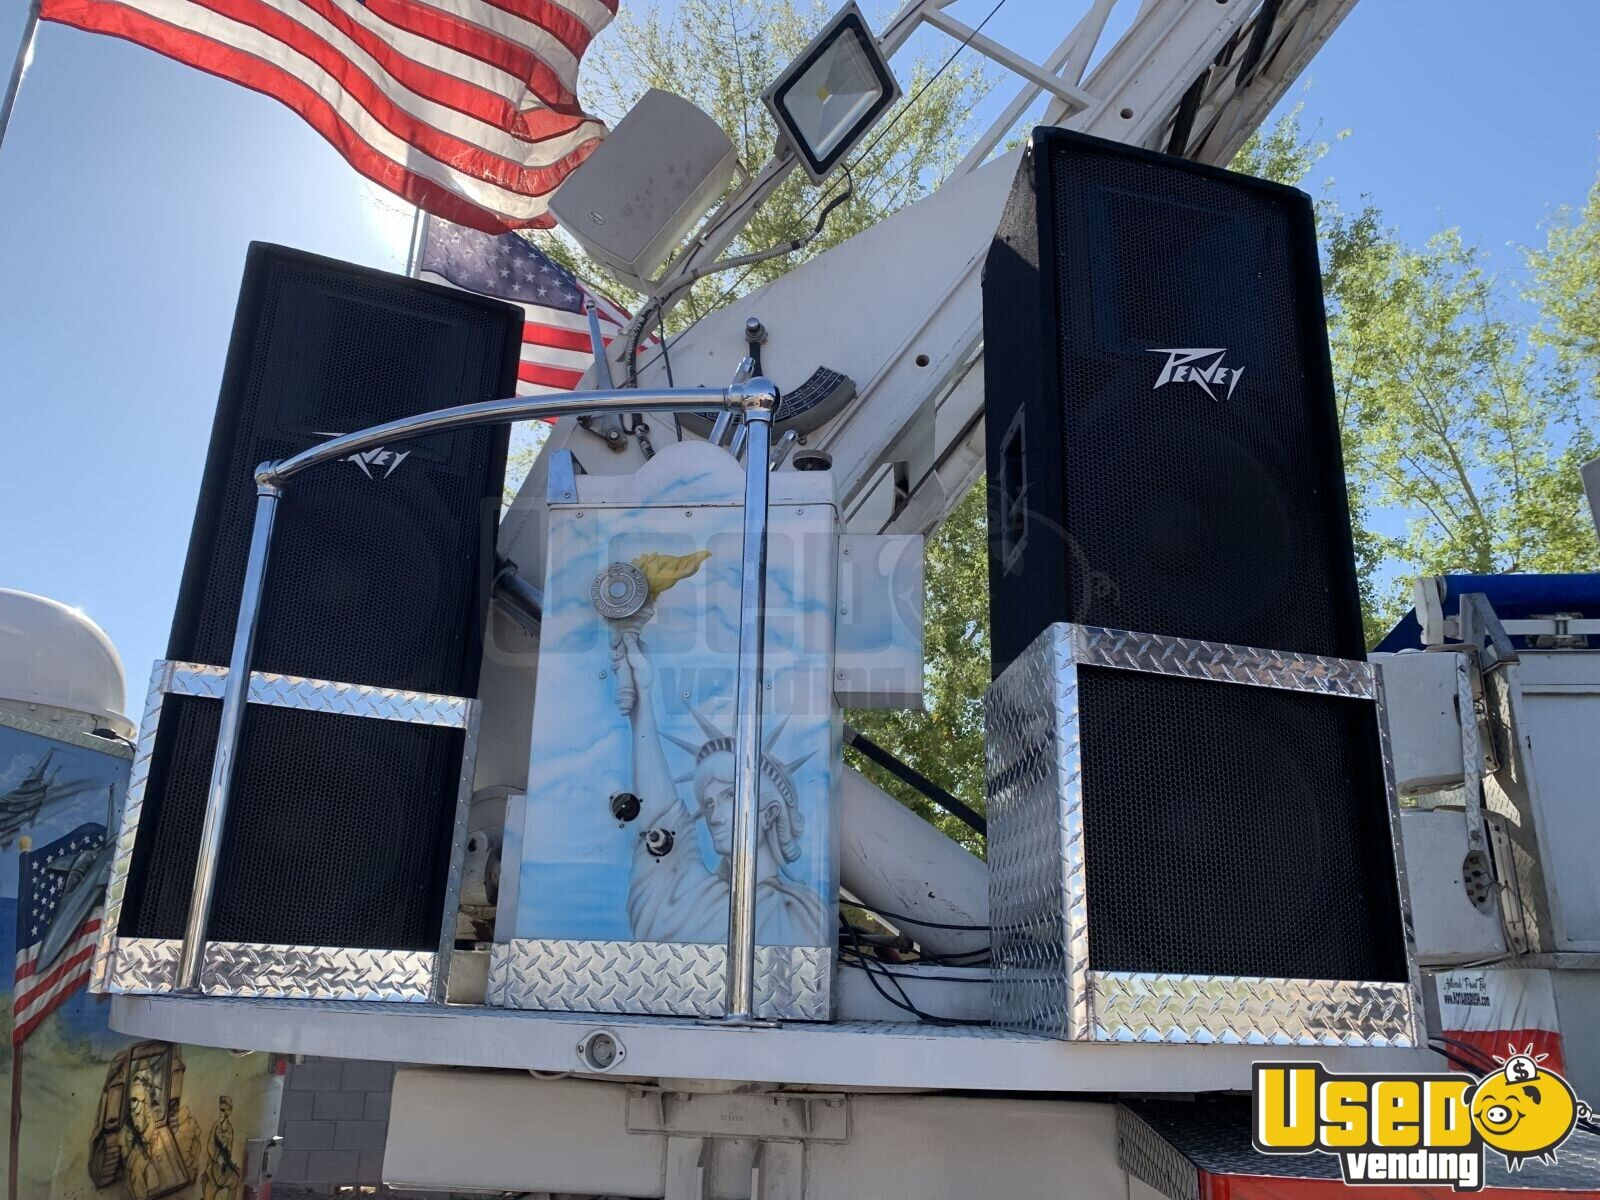 1986 Hahn Ladder Tiller Barbecue Food Truck Soda Fountain System Arizona Diesel Engine for Sale - 9